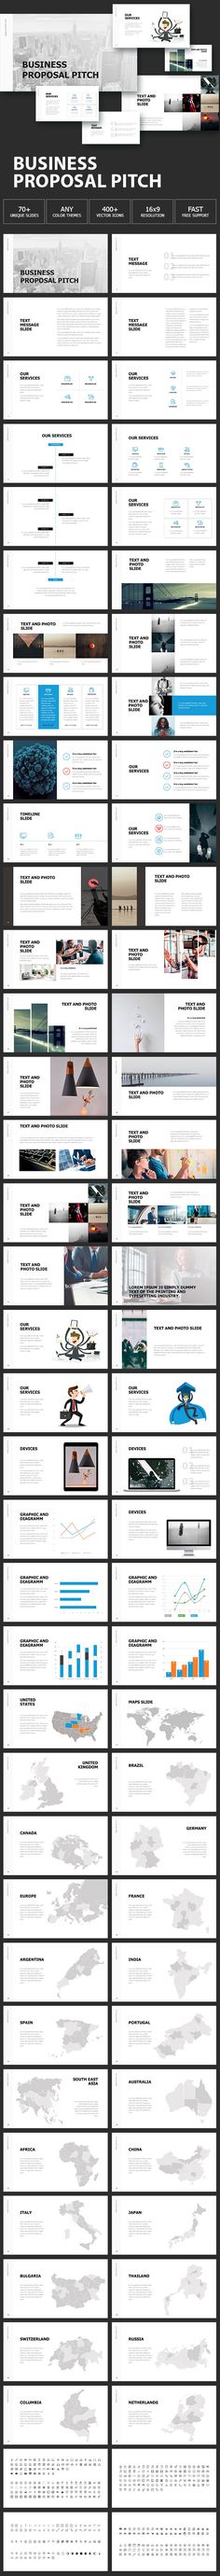 1075 best presentation templates images on pinterest in 2018